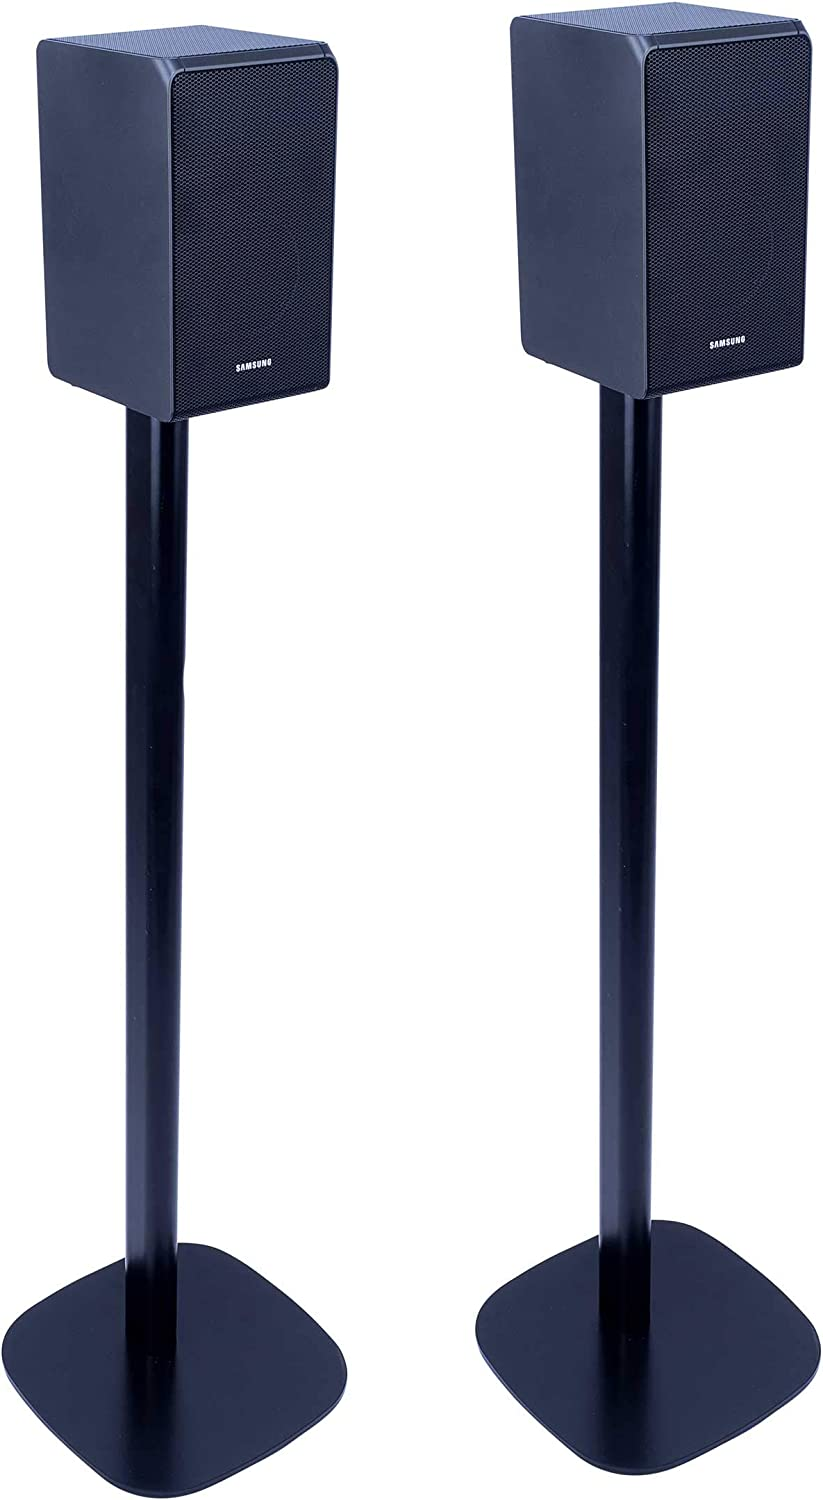 Vebos Floor Stand Samsung HW-Q10R Black Set en Optimal Experience in Every  Room - Allows You to Place Your Samsung HW-Q10R Exactly Where You Want it -